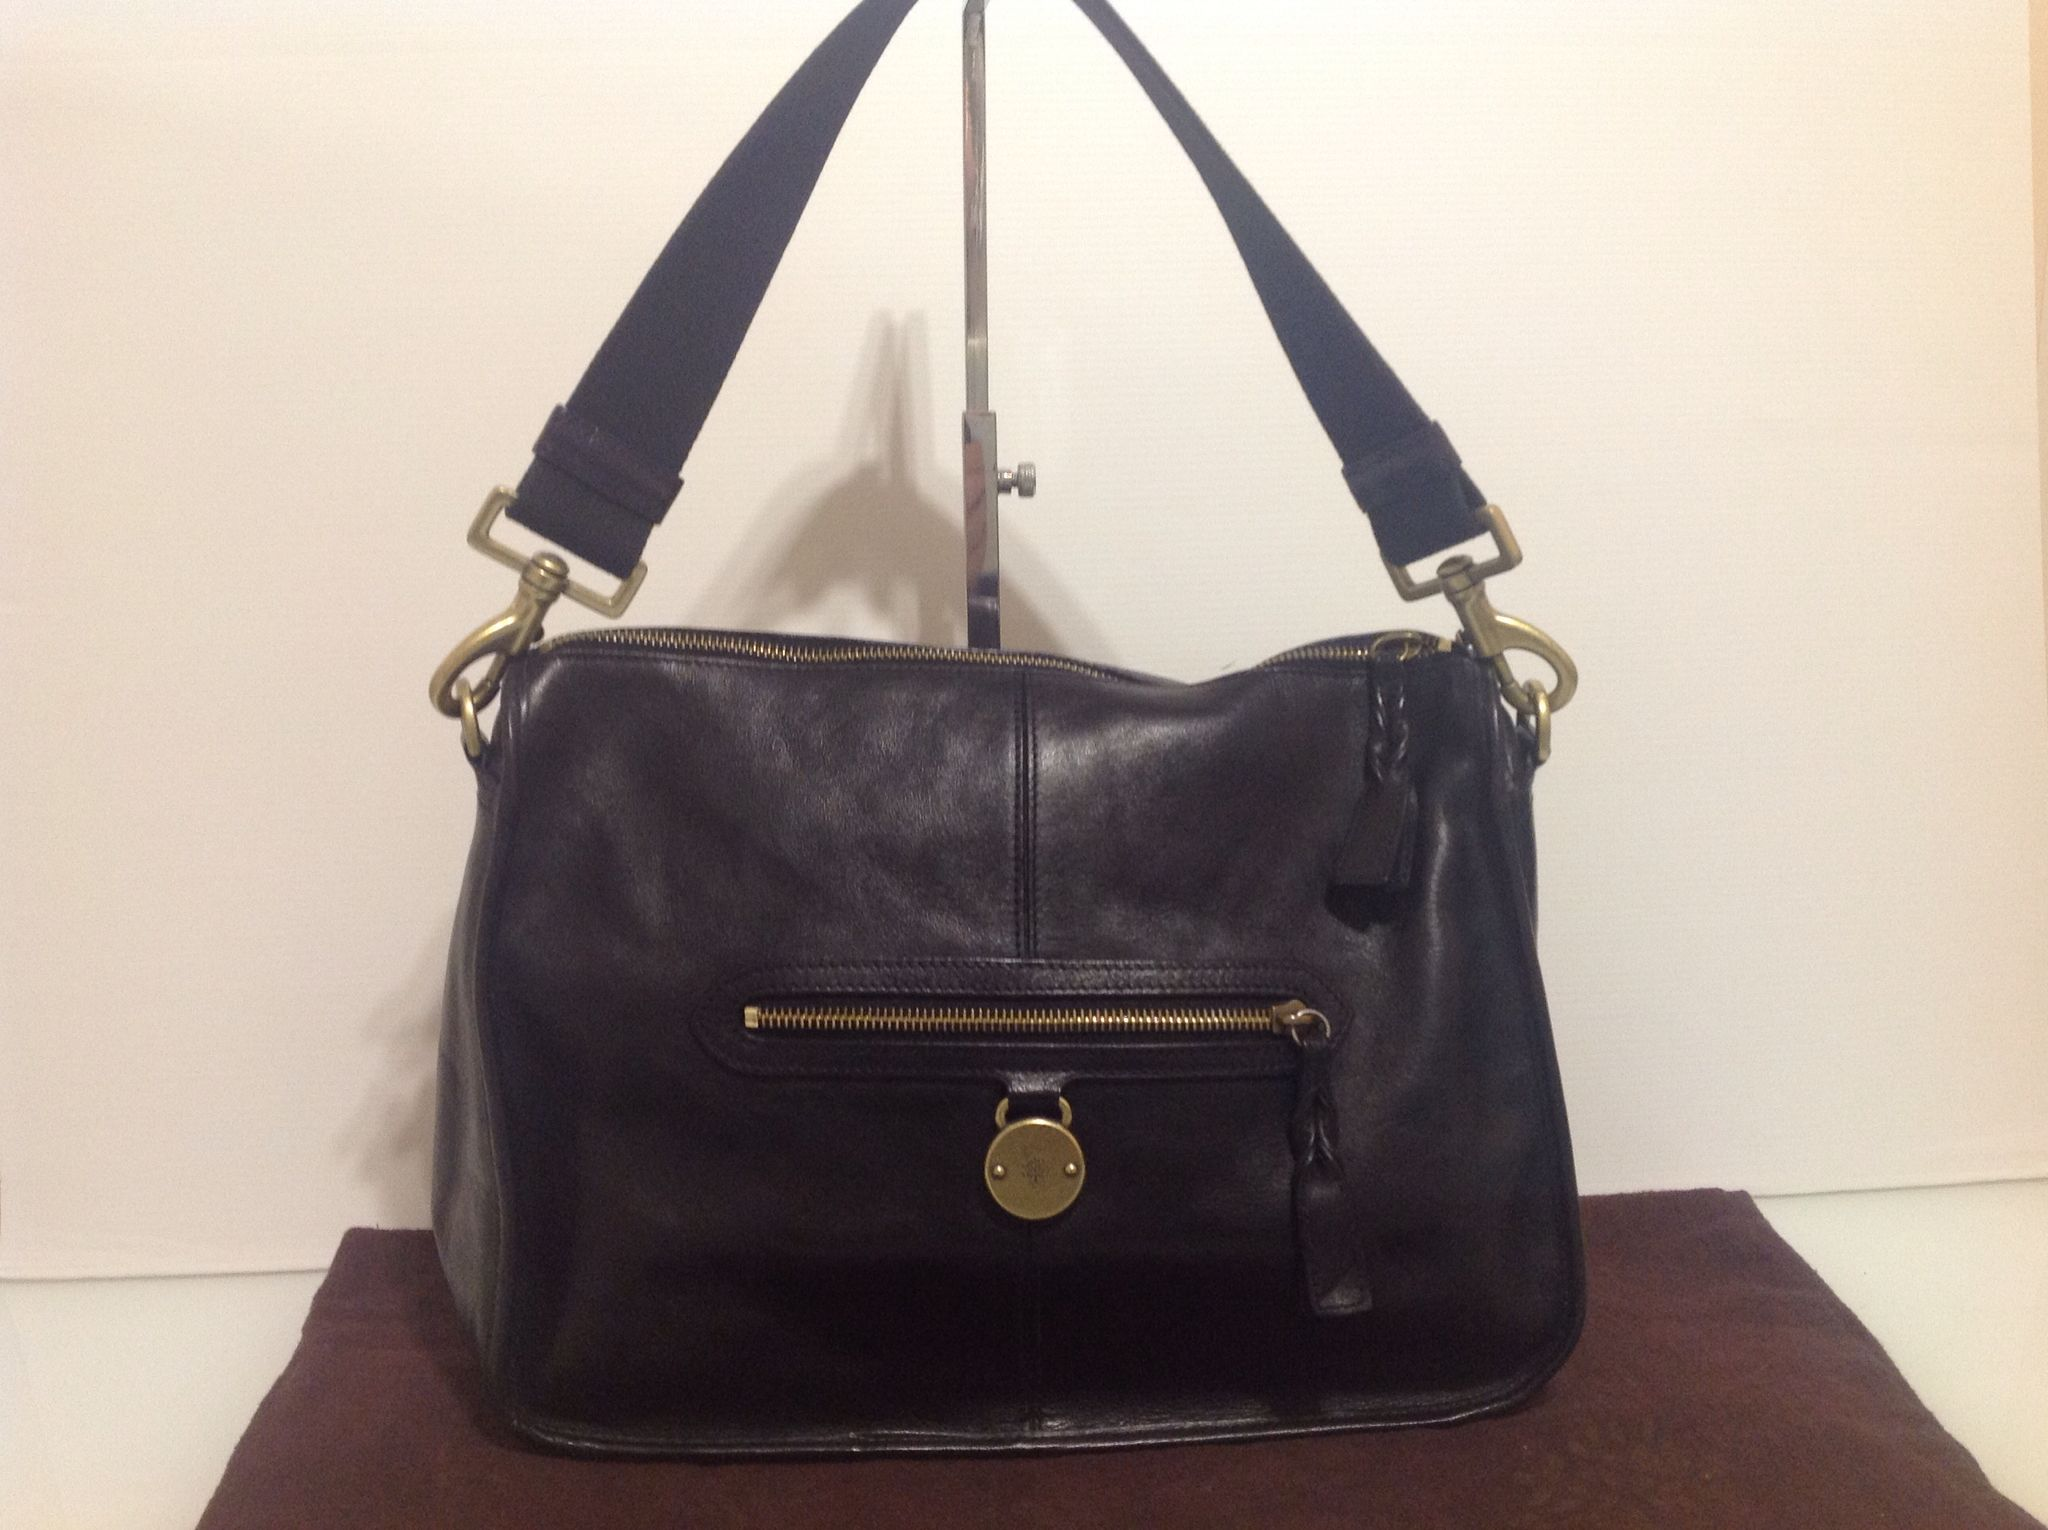 Authentic Mulberry Somerset Shoulder Tote in Black Leather with Dust Bag  340.00 This is a guaranteed 69f9873cb9669